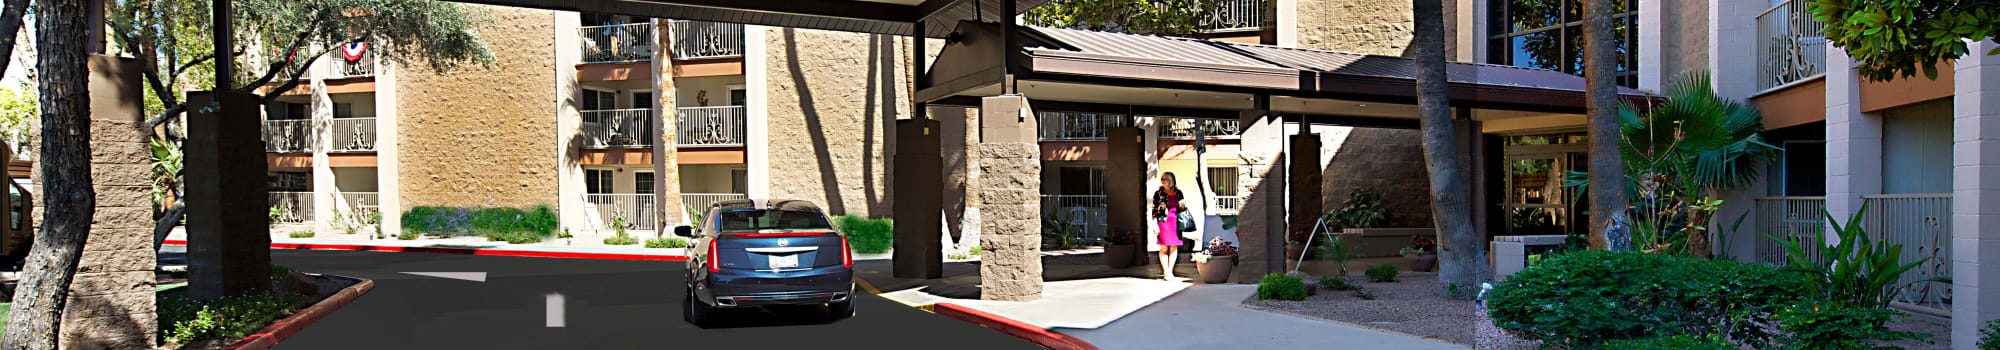 Schedule a tour to see Bella Vista Senior Living in Mesa, Arizona